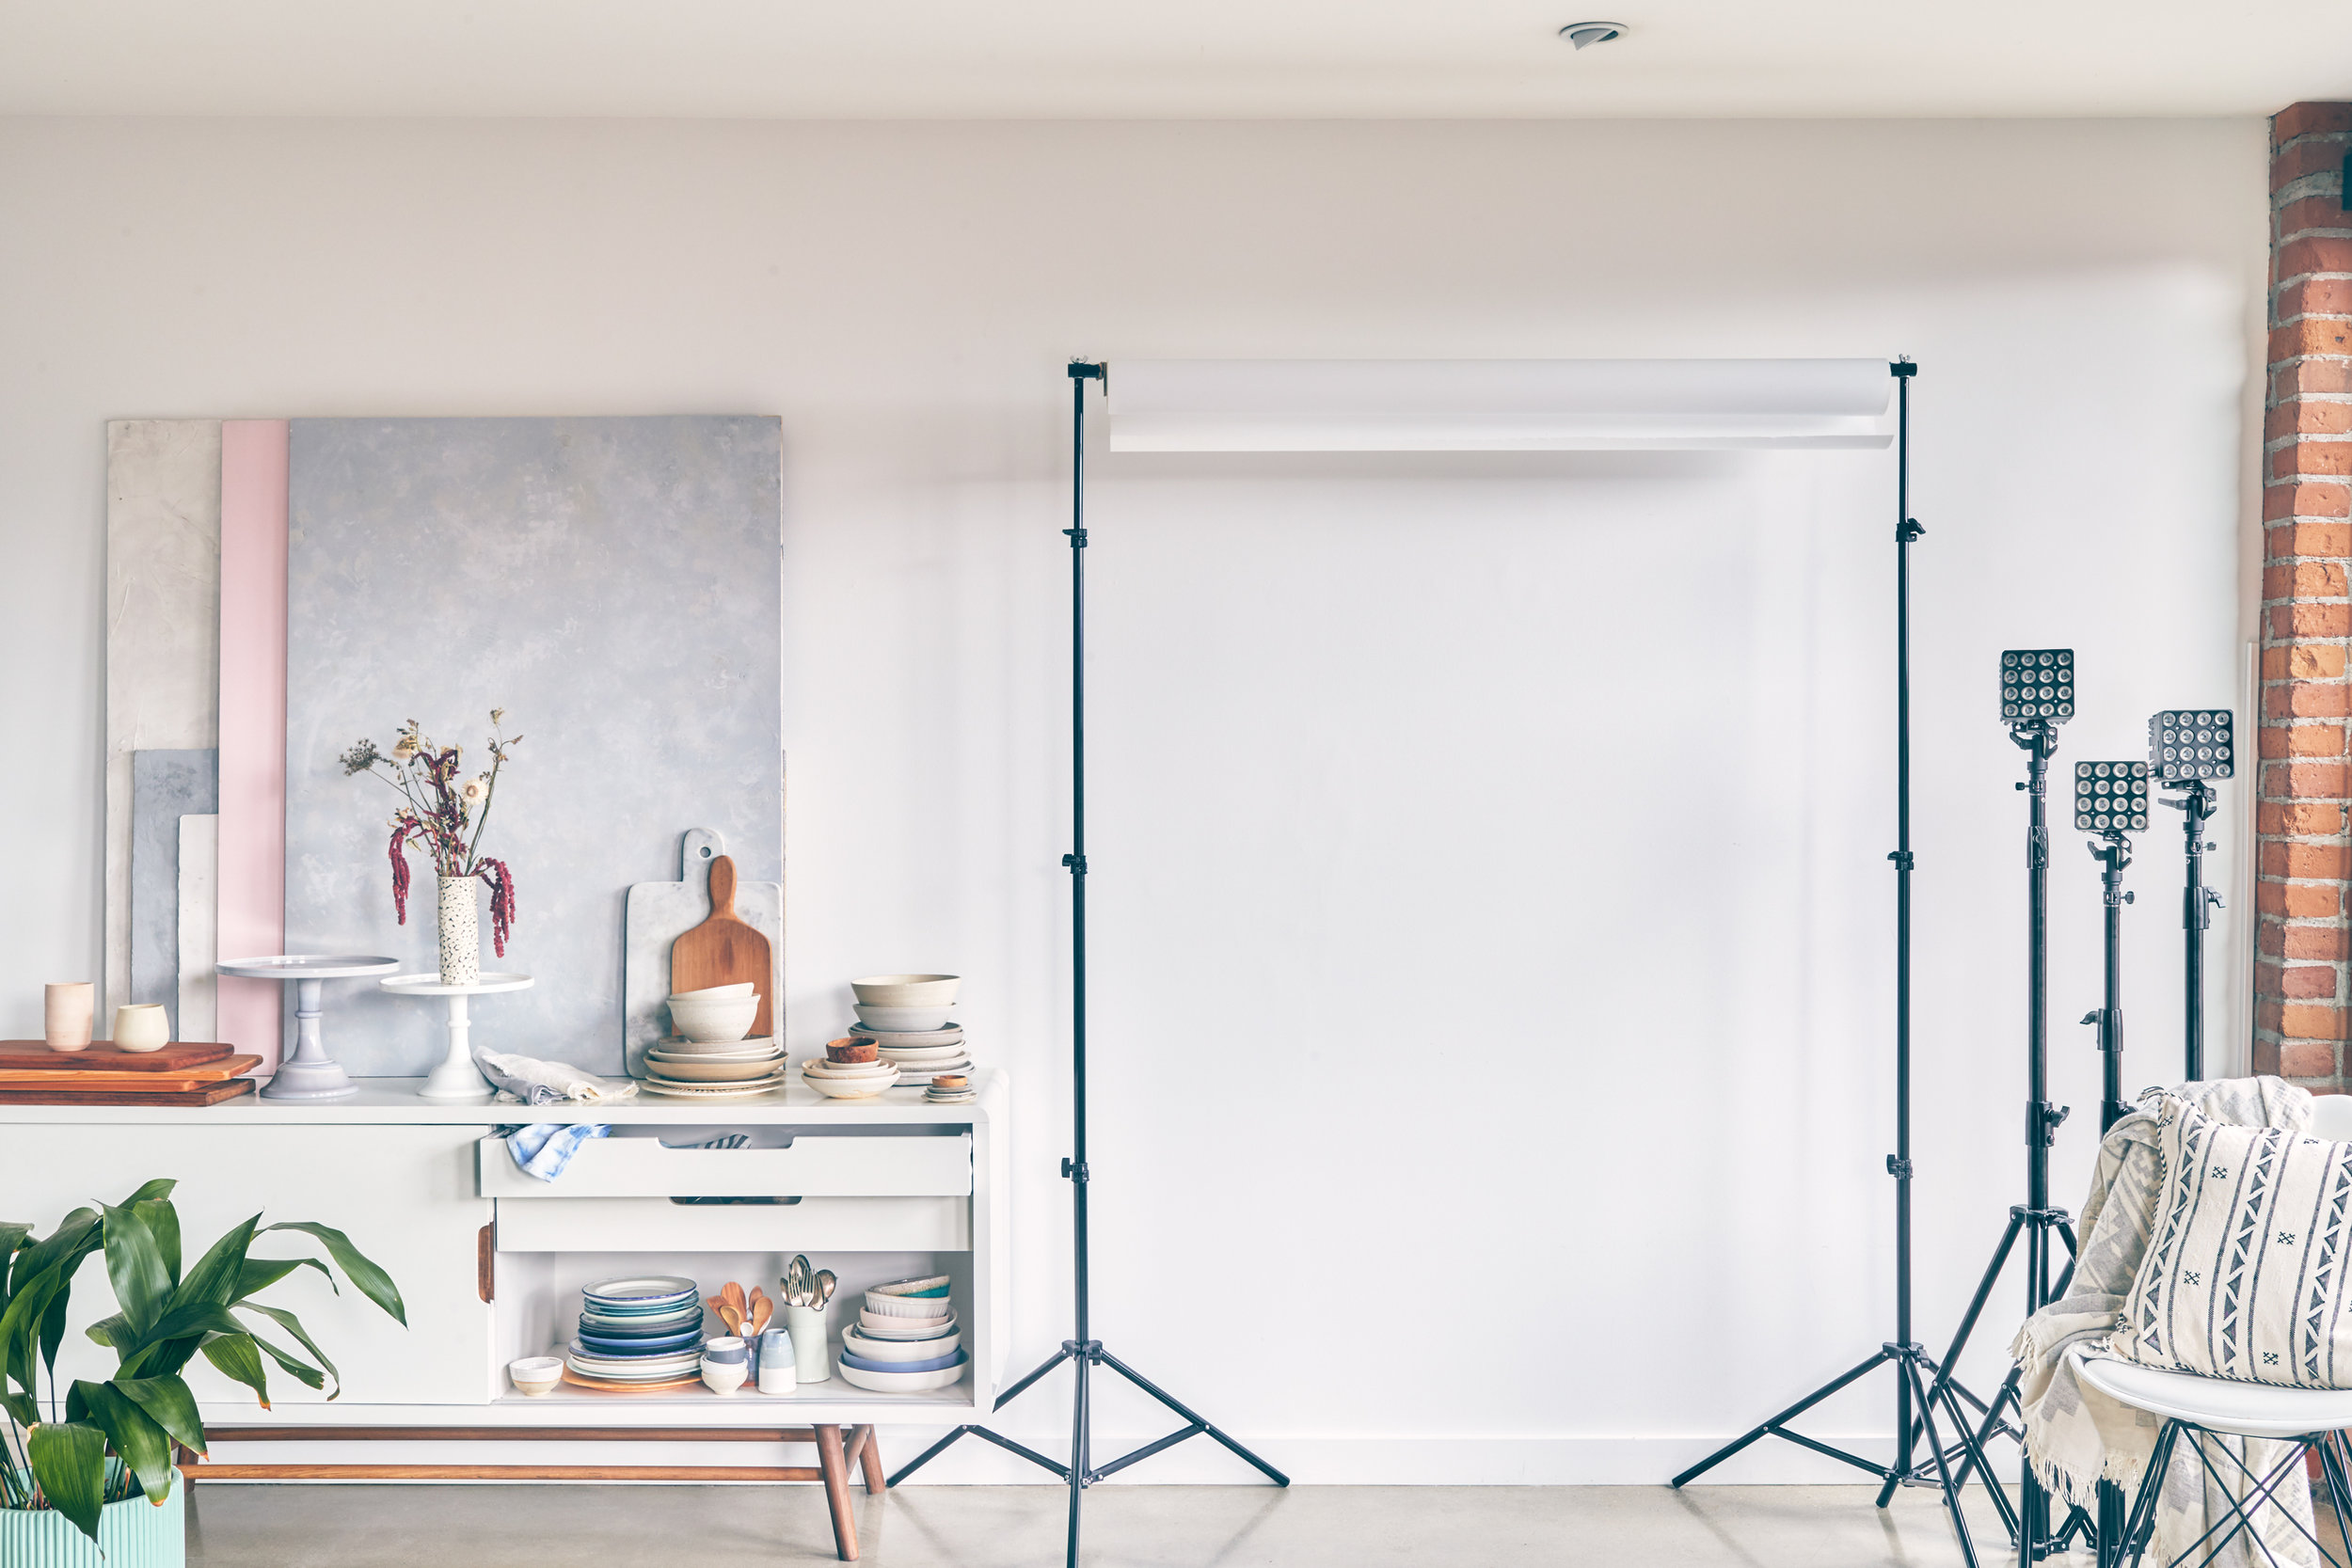 Evergreen Kitchen's Photography Studio